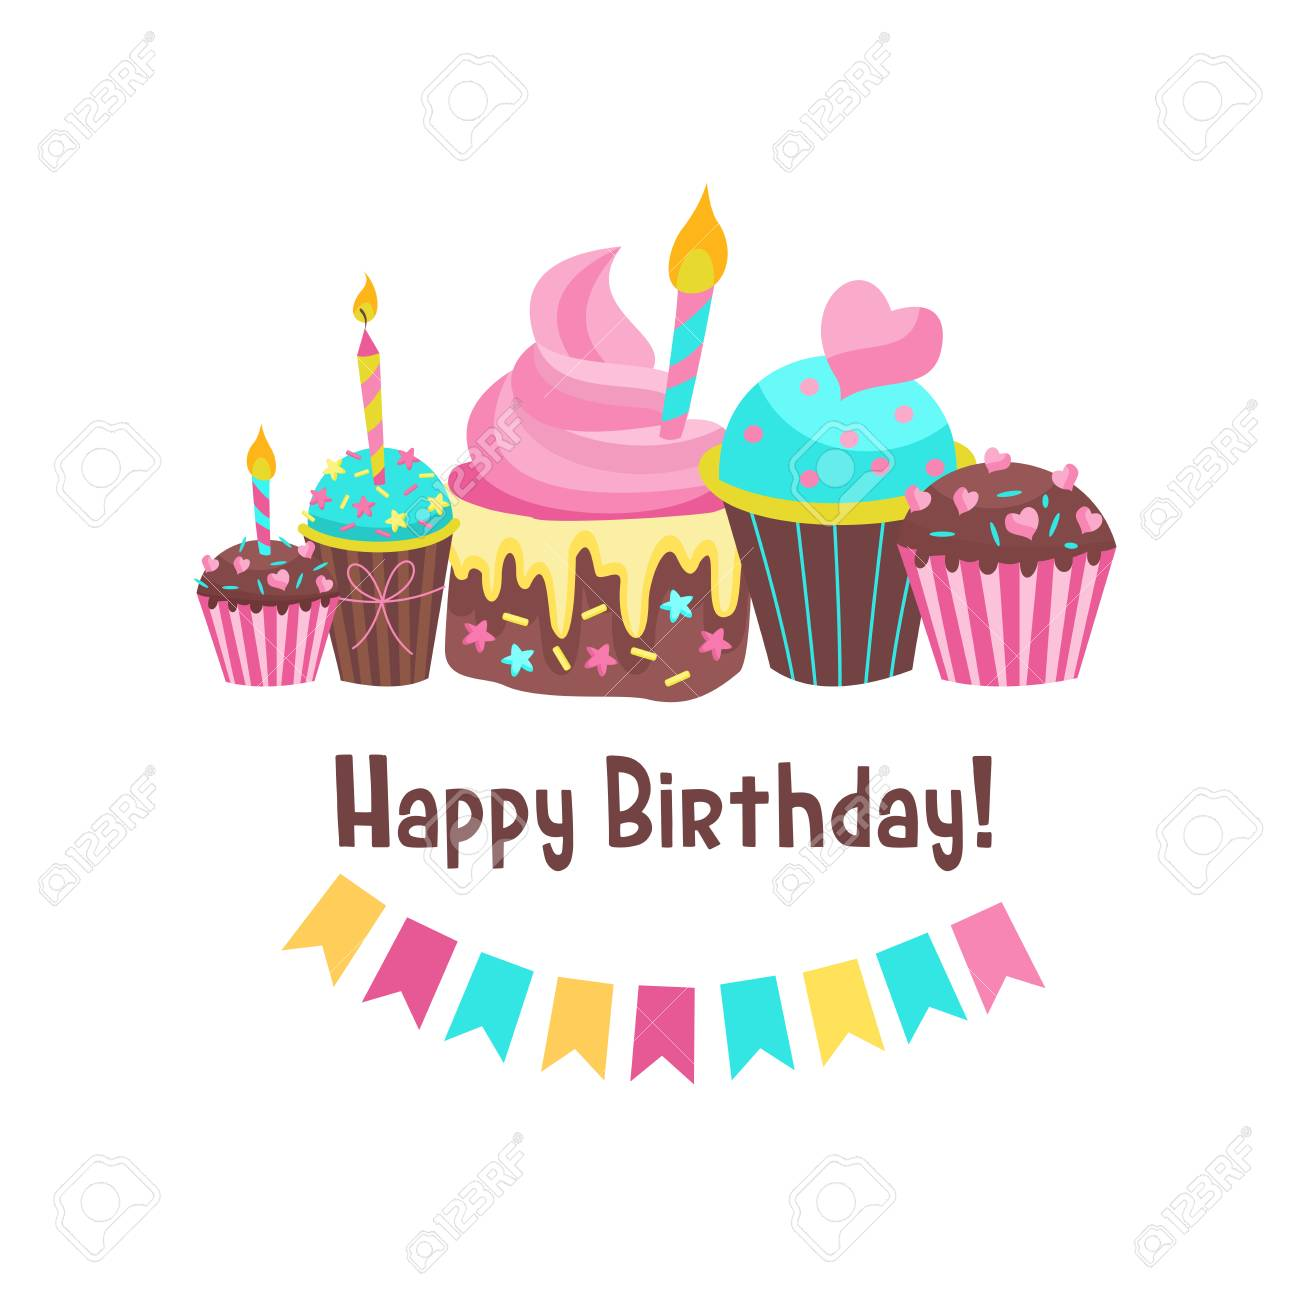 Happy Birthday Greeting Card Background Design Of Lovely Cakes With Candles Stock Vector